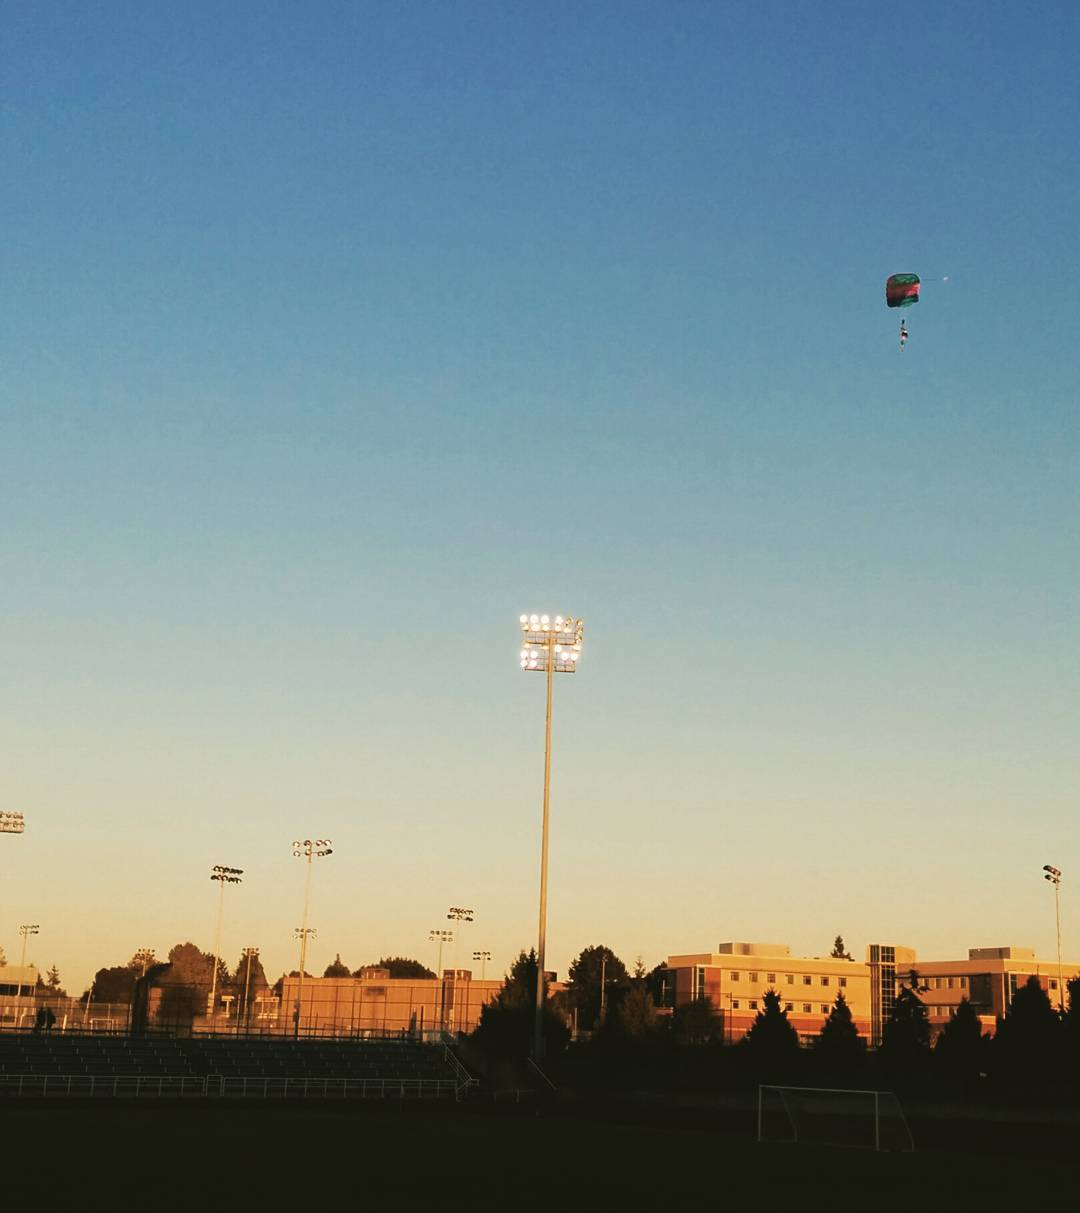 A soccer field at dusk with rectangular buildings in the distance. The sun is setting so the horizon still has some sun but the upper part of the sky is dusky blue, and there is a skydiver with their parachute pulled descending from the upper left.